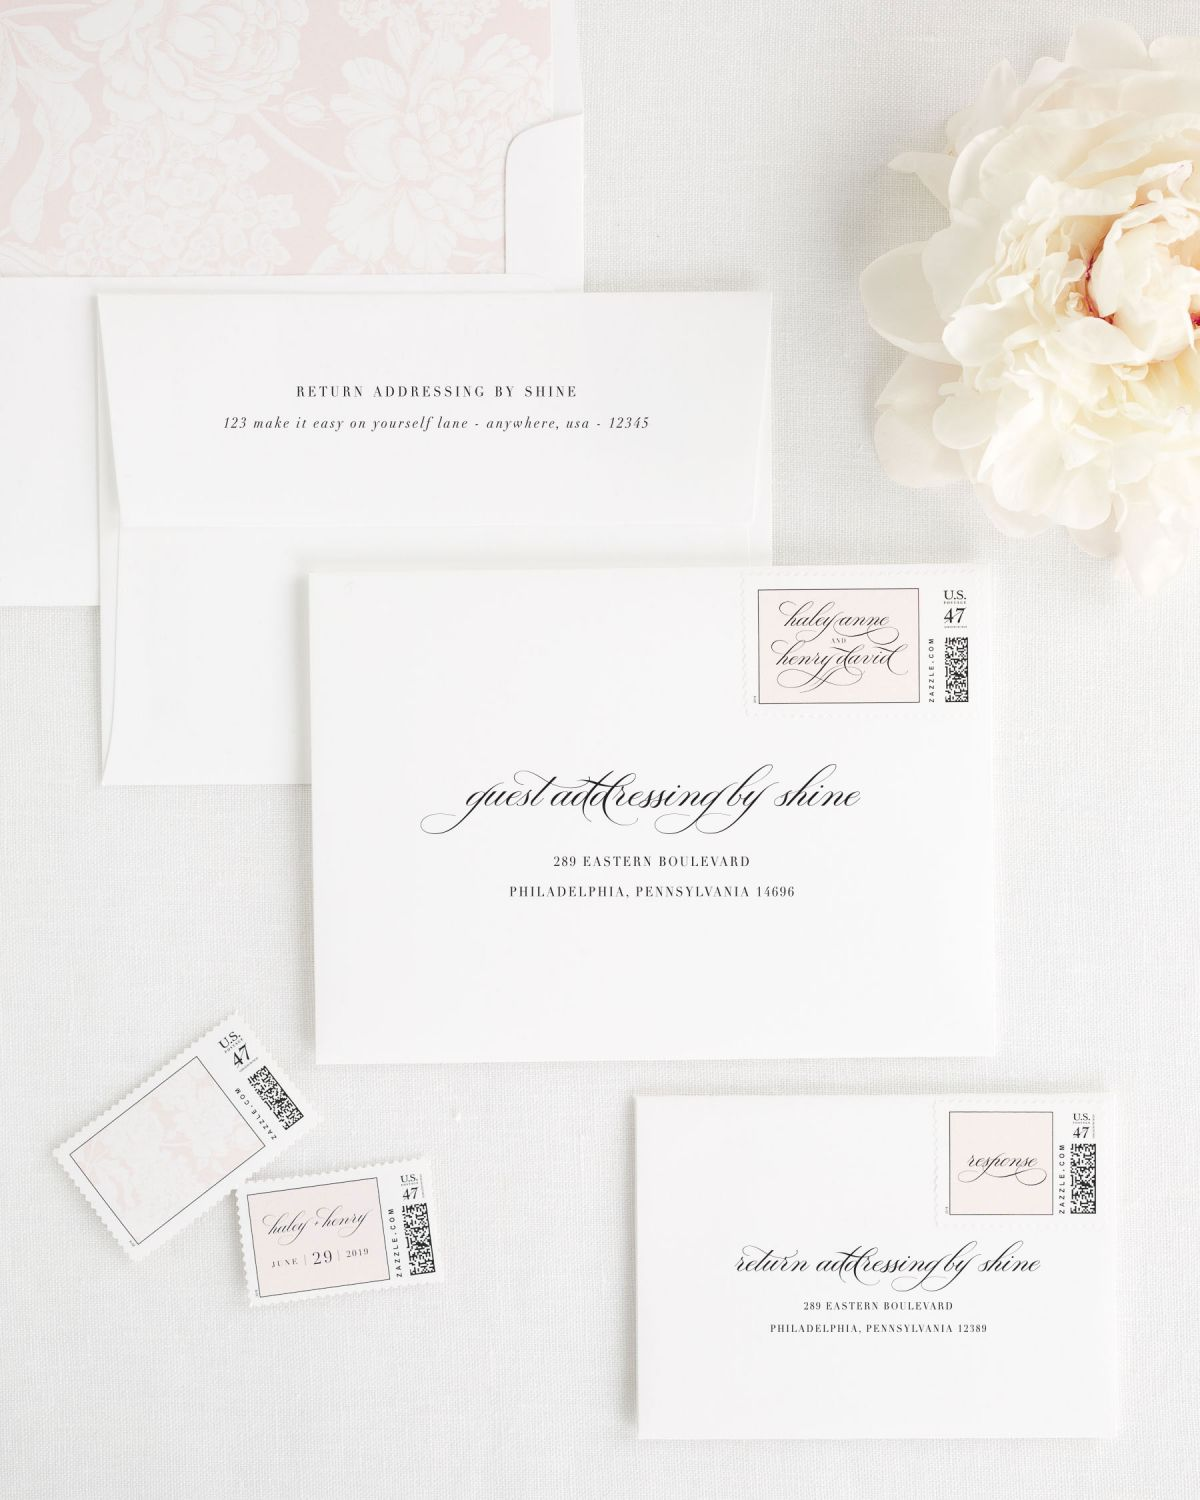 Invitation Envelopes with Address Printing, Custom Postage Stamps, and Light Pink Envelope Liner